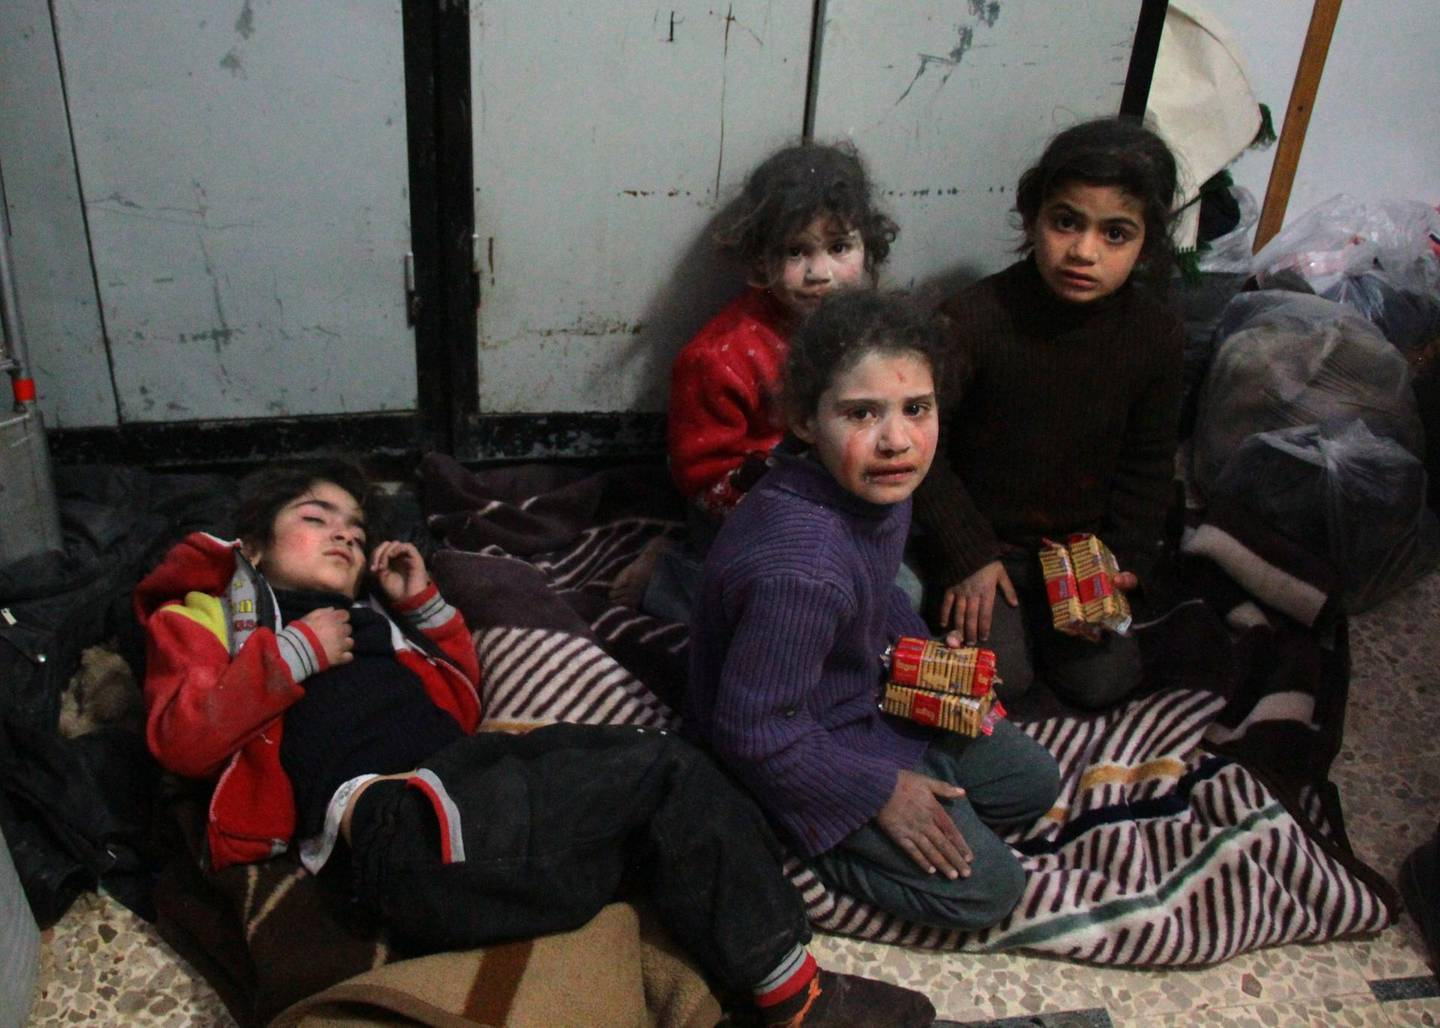 TOPSHOT - EDITORS NOTE: Graphic content / Syrian children cry at a make-shift hospital in Douma following air strikes on the Syrian village of Mesraba in the besieged Eastern Ghouta region on the outskirts of the capital Damascus, on February 19, 2018. Heavy Syrian bombardment killed dozens of civilians in rebel-held Eastern Ghouta, as regime forces appeared to prepare for an imminent ground assault. / AFP PHOTO / Hamza Al-Ajweh